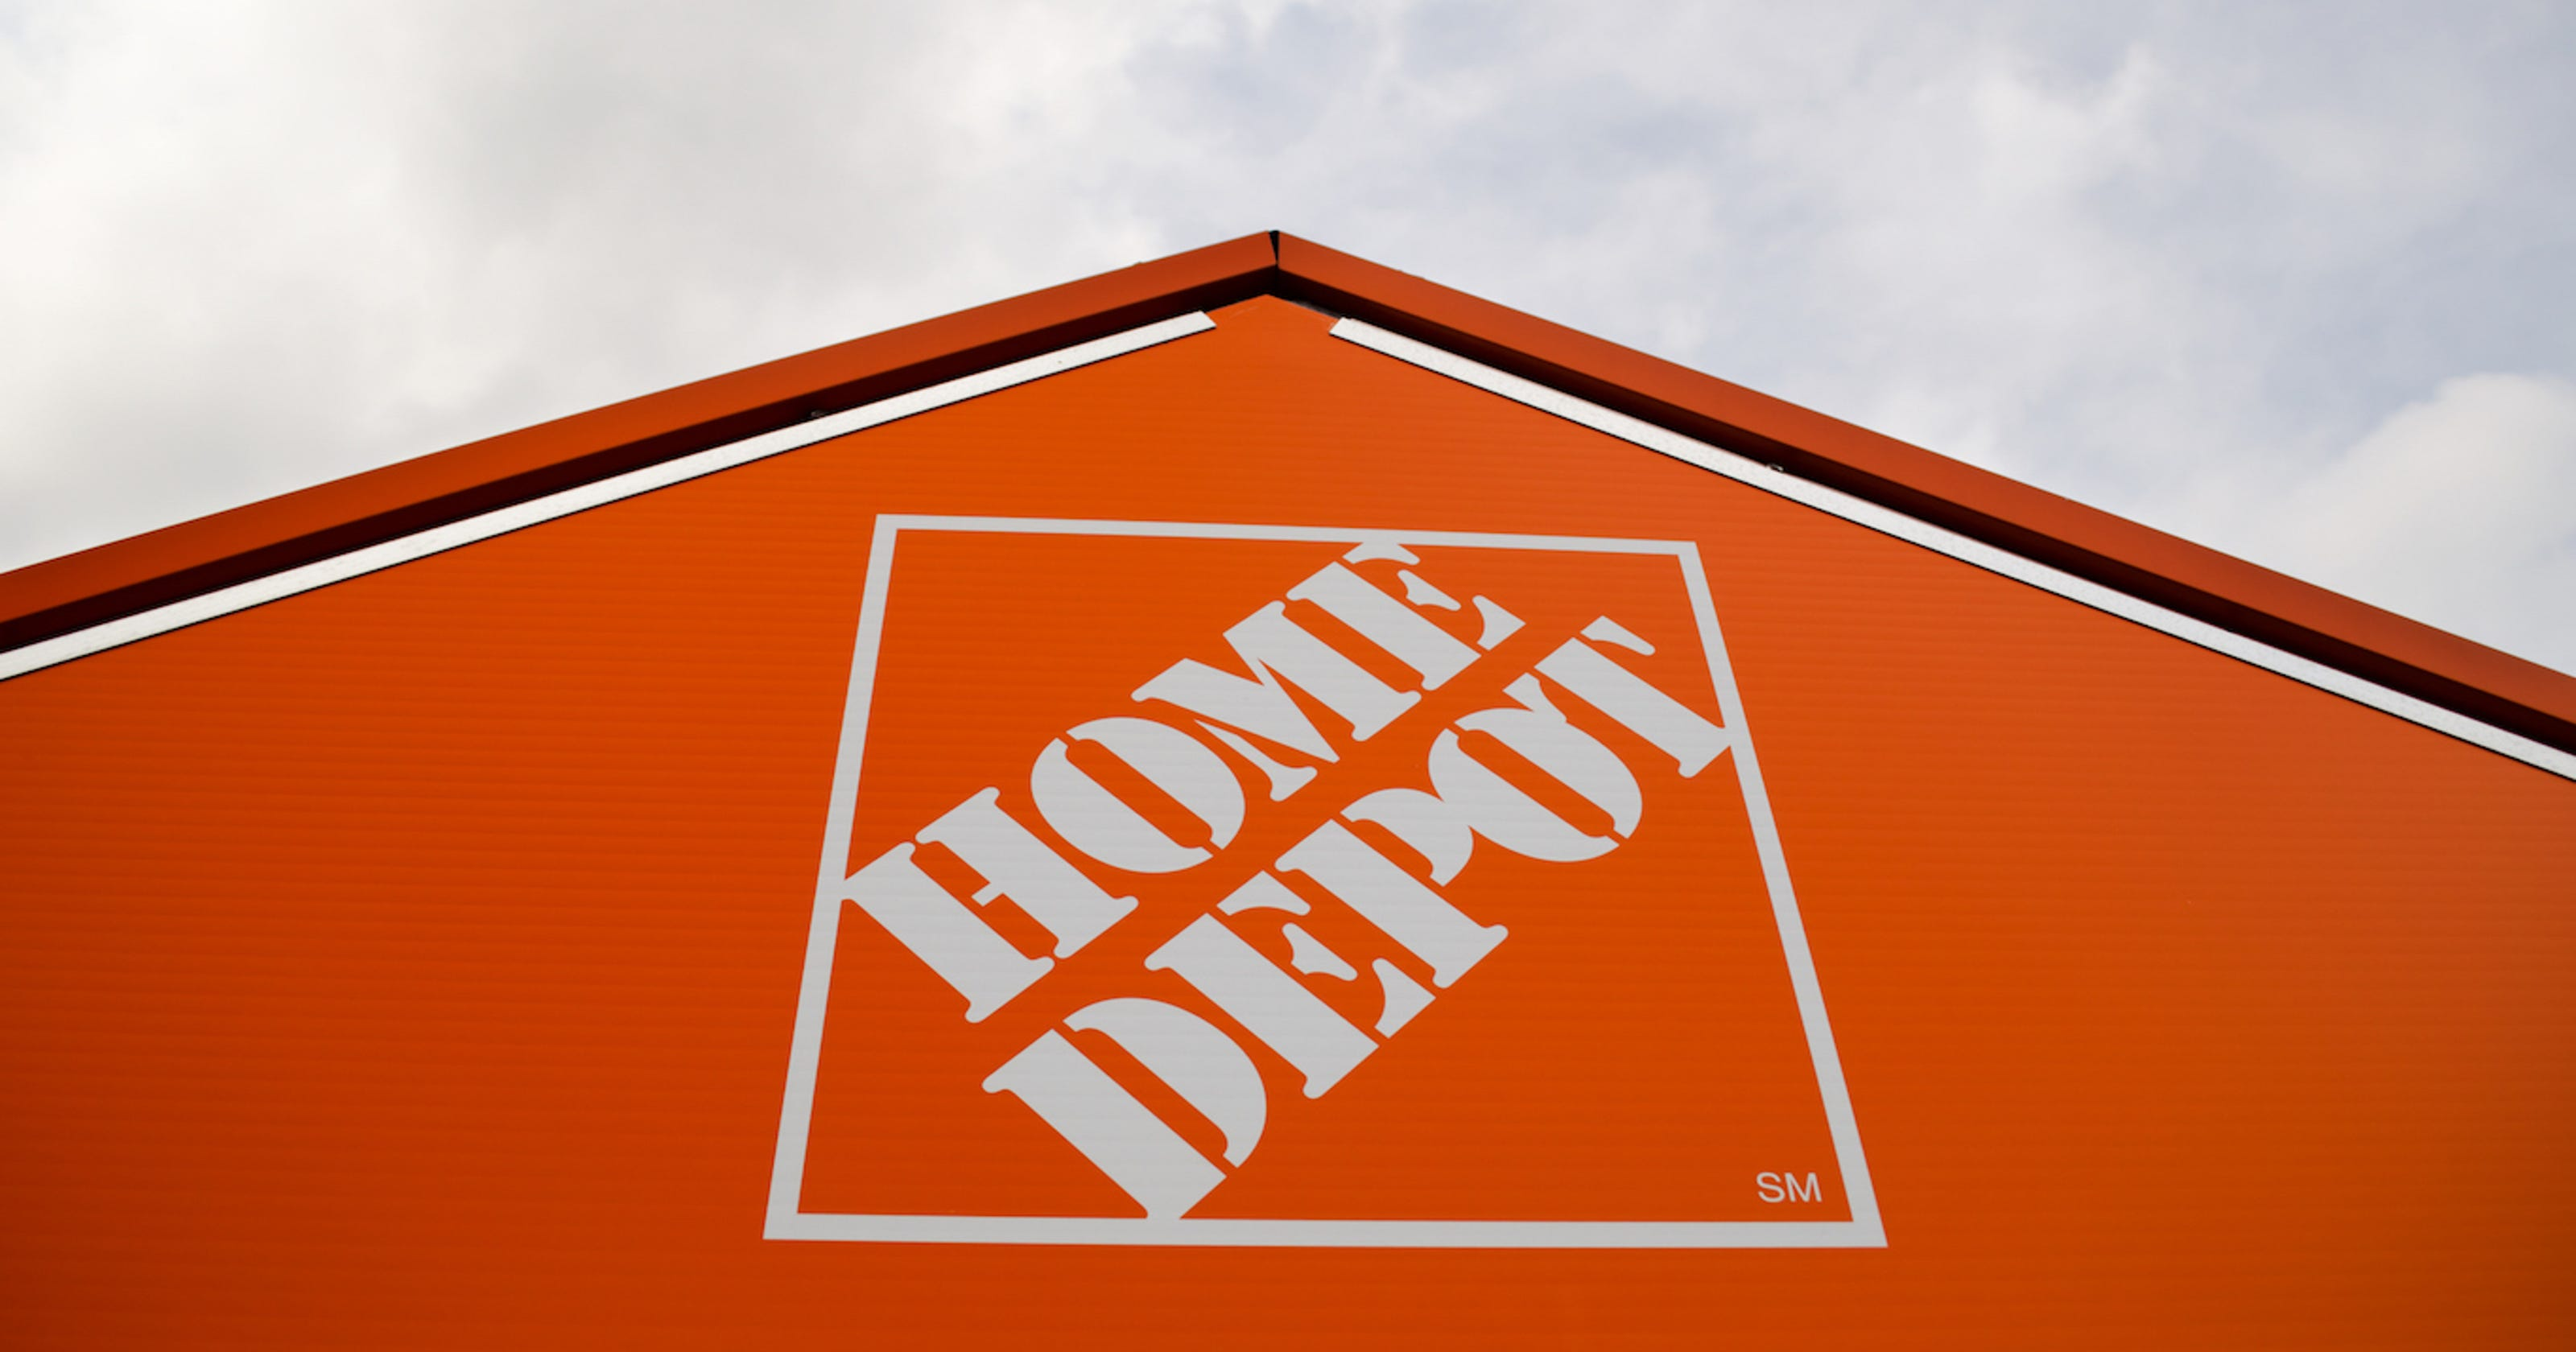 Victor Home Depot accident leaves one dead